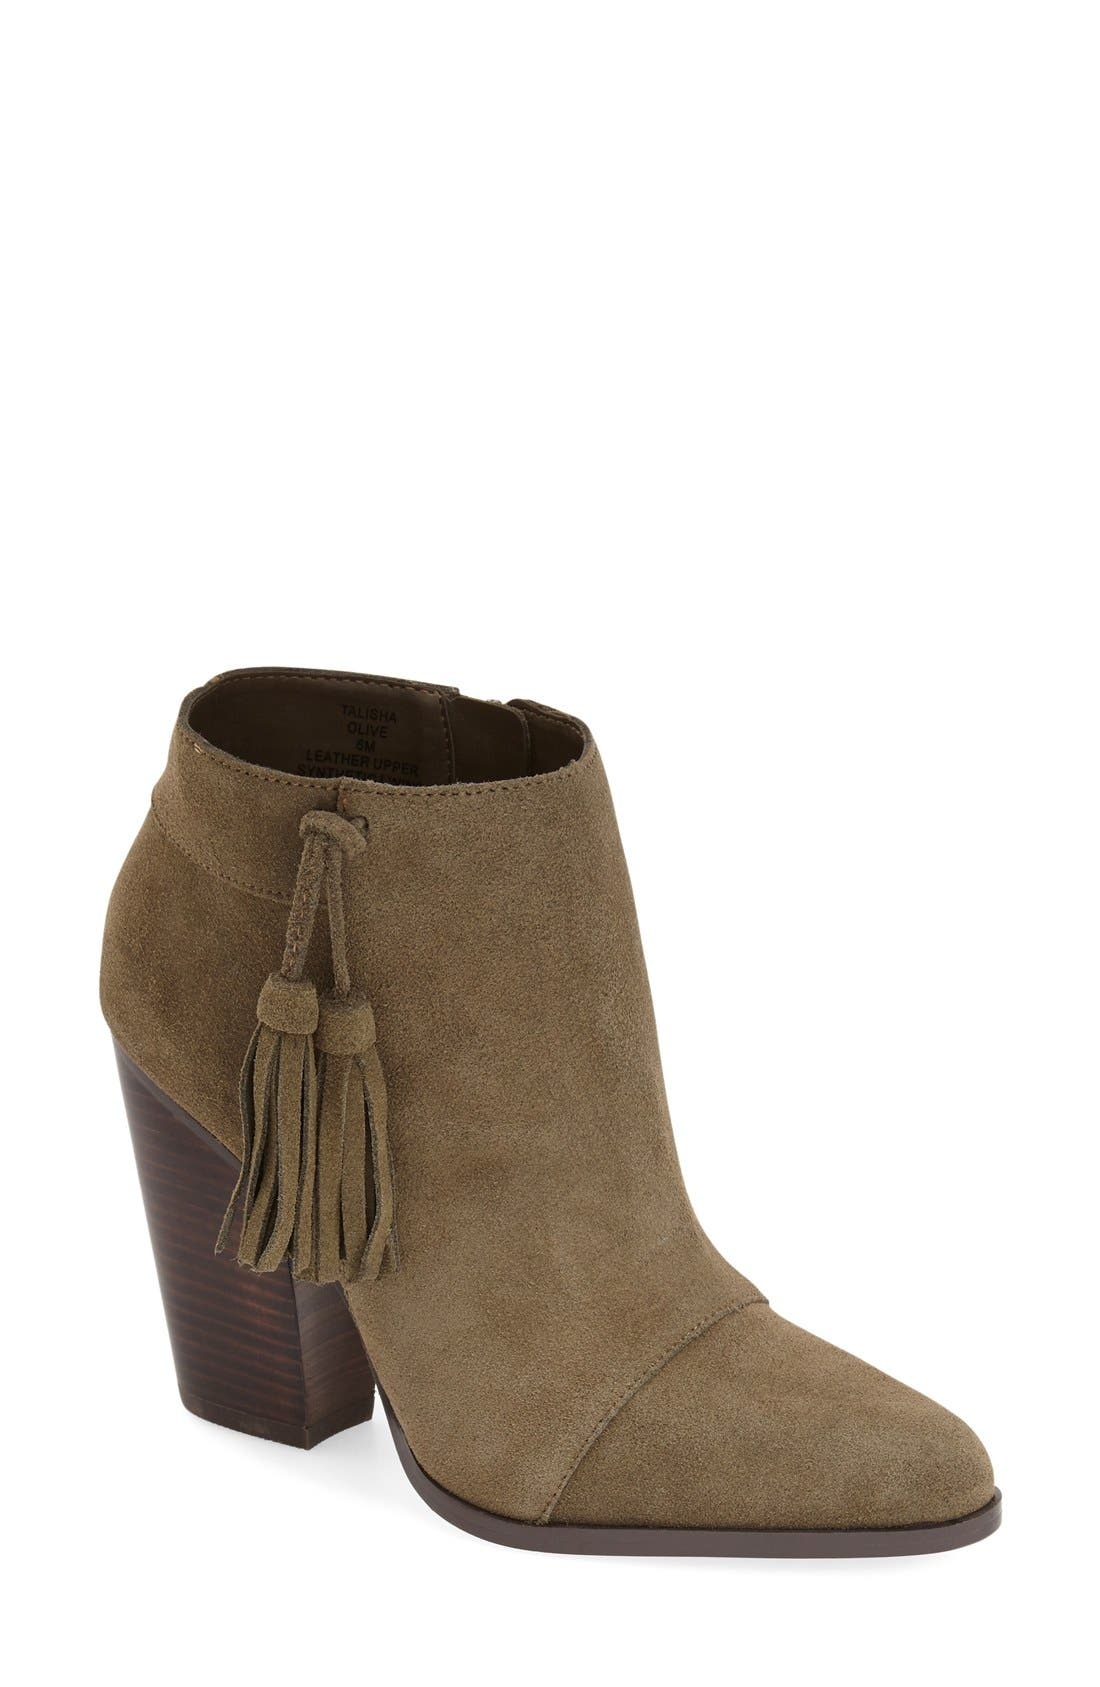 Main Image - Sole Society 'Talisha' Tassel Bootie (Women)